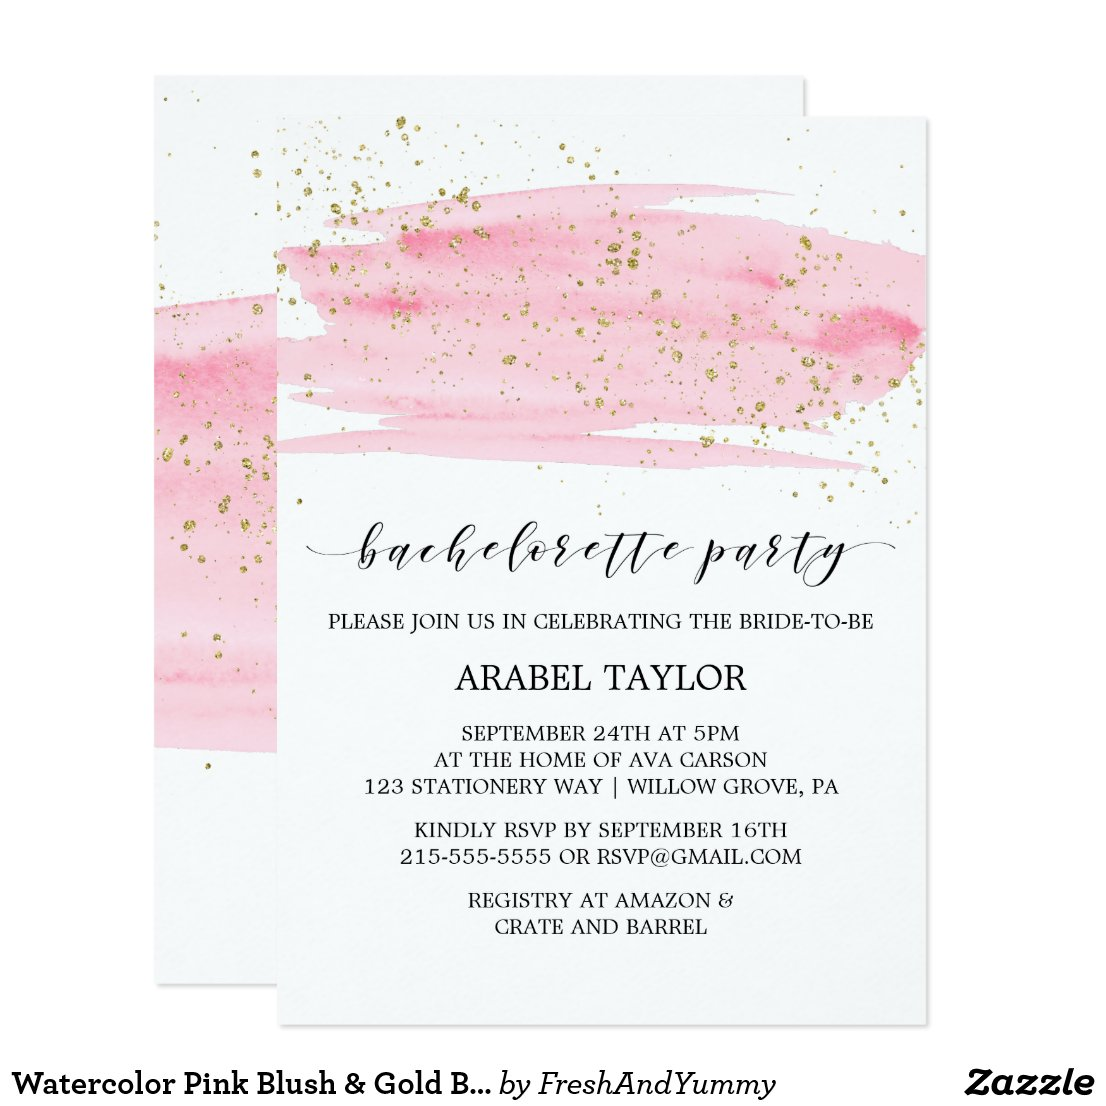 Watercolor Pink Blush & Gold Bachelorette Party Card